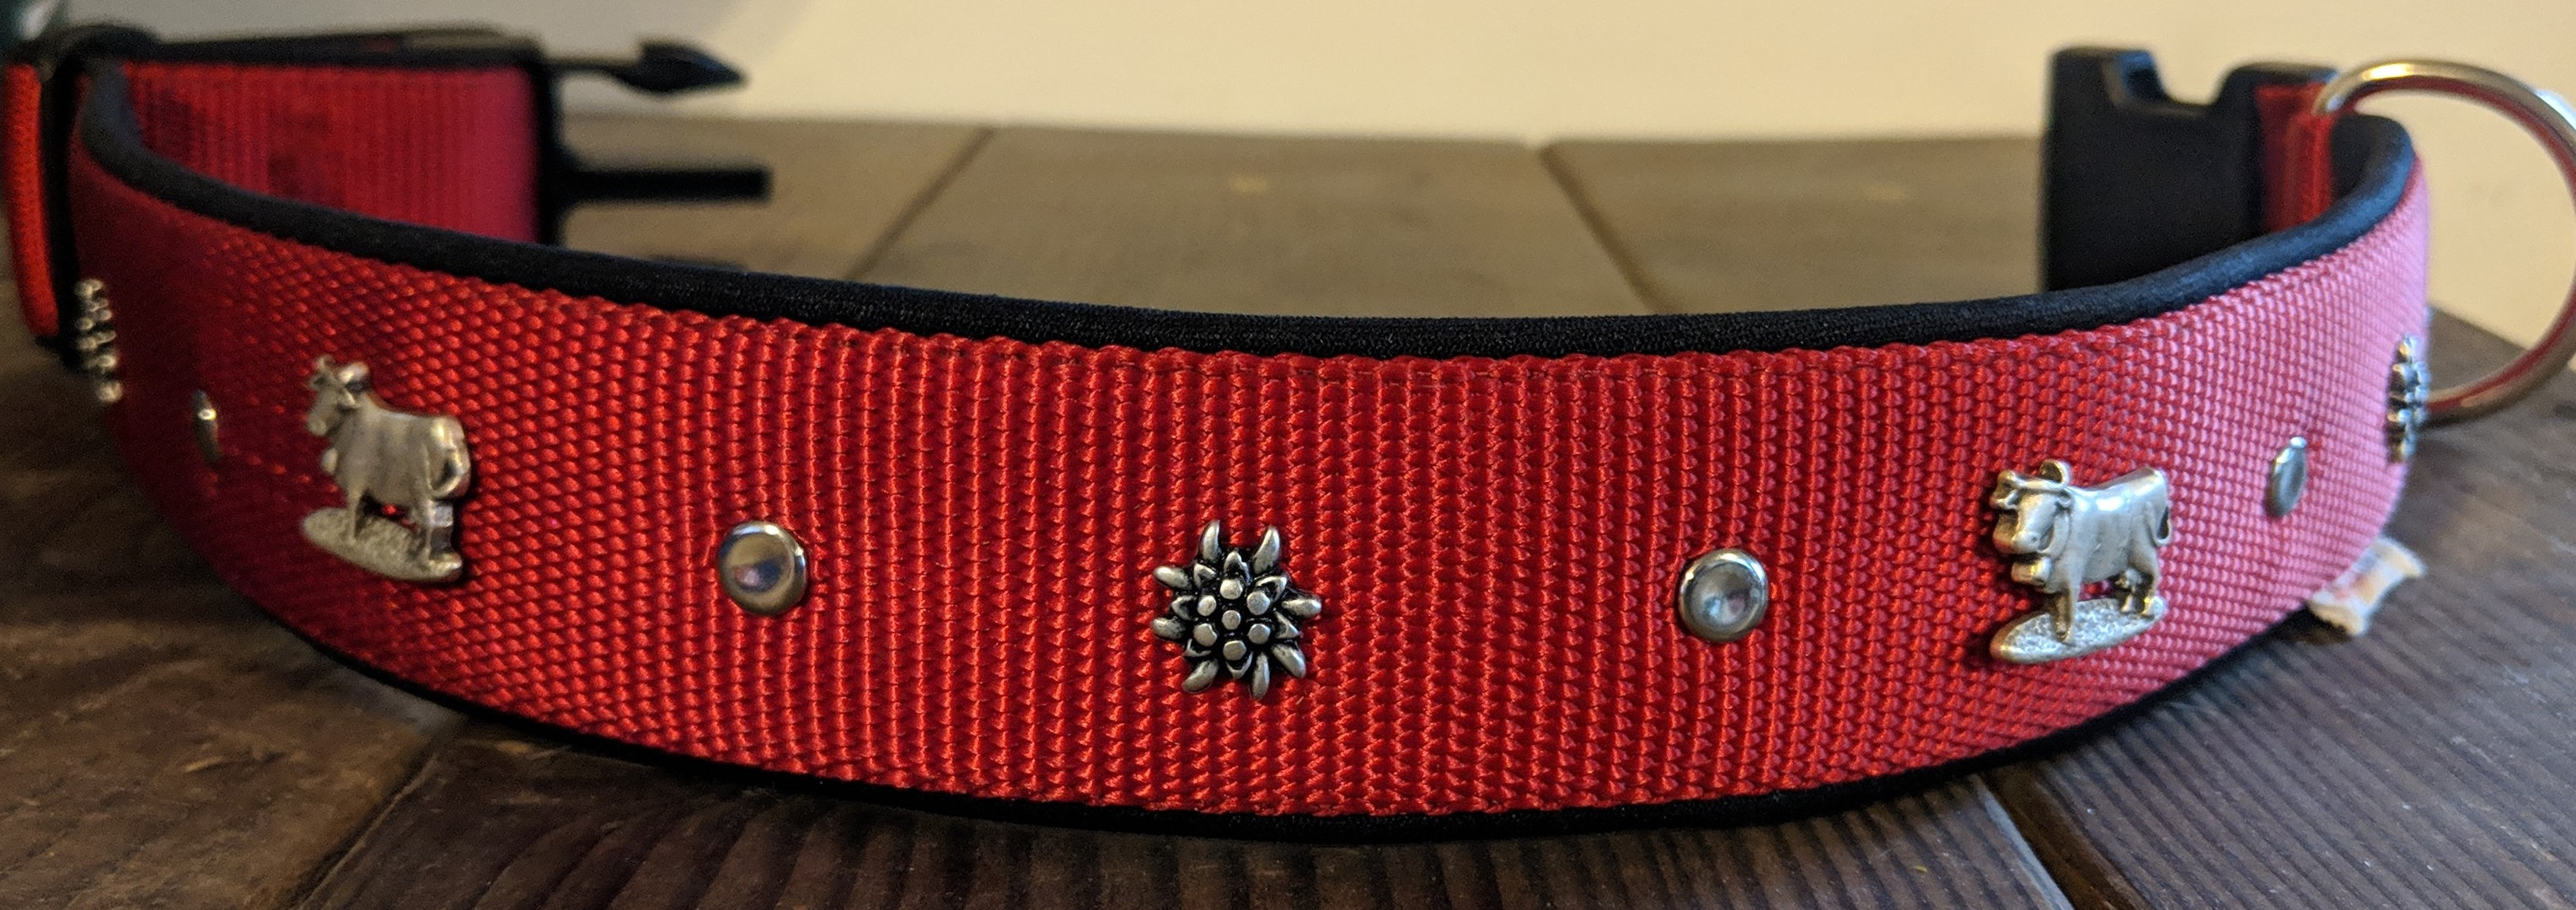 cow and edelweiss rivets, red nylon, bla